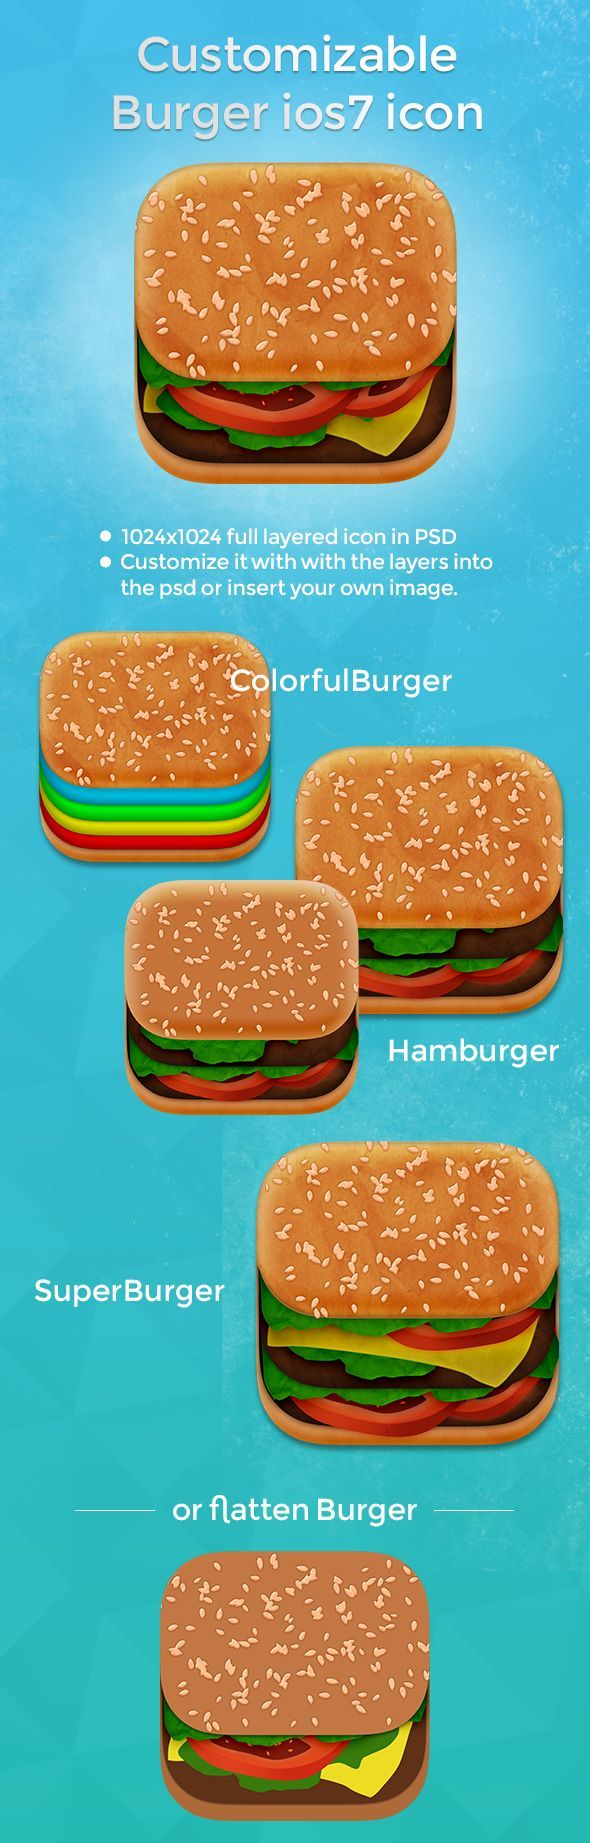 Burger app icon - big mac